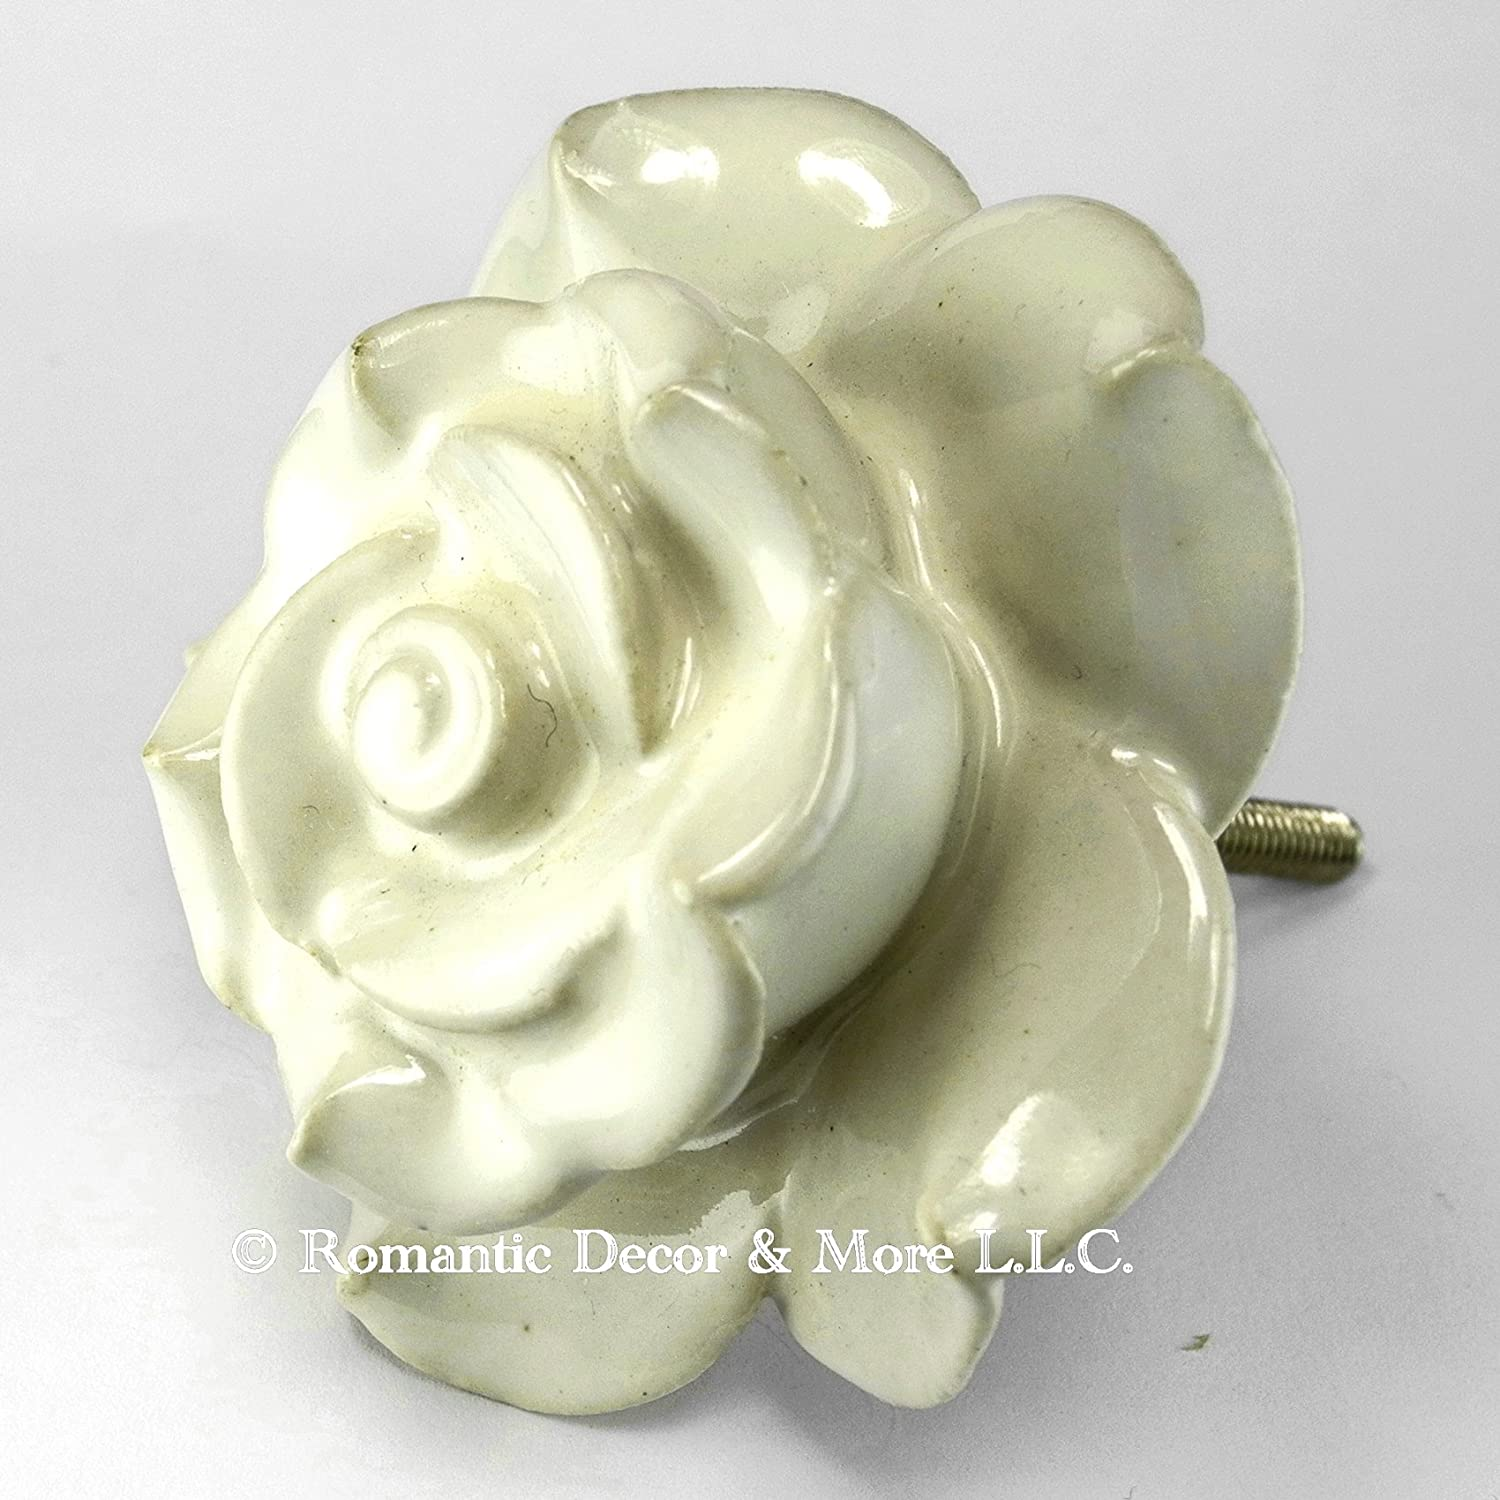 Amazon.com: White Rose Ceramic Knobs, Cupboard Drawer Pulls ...